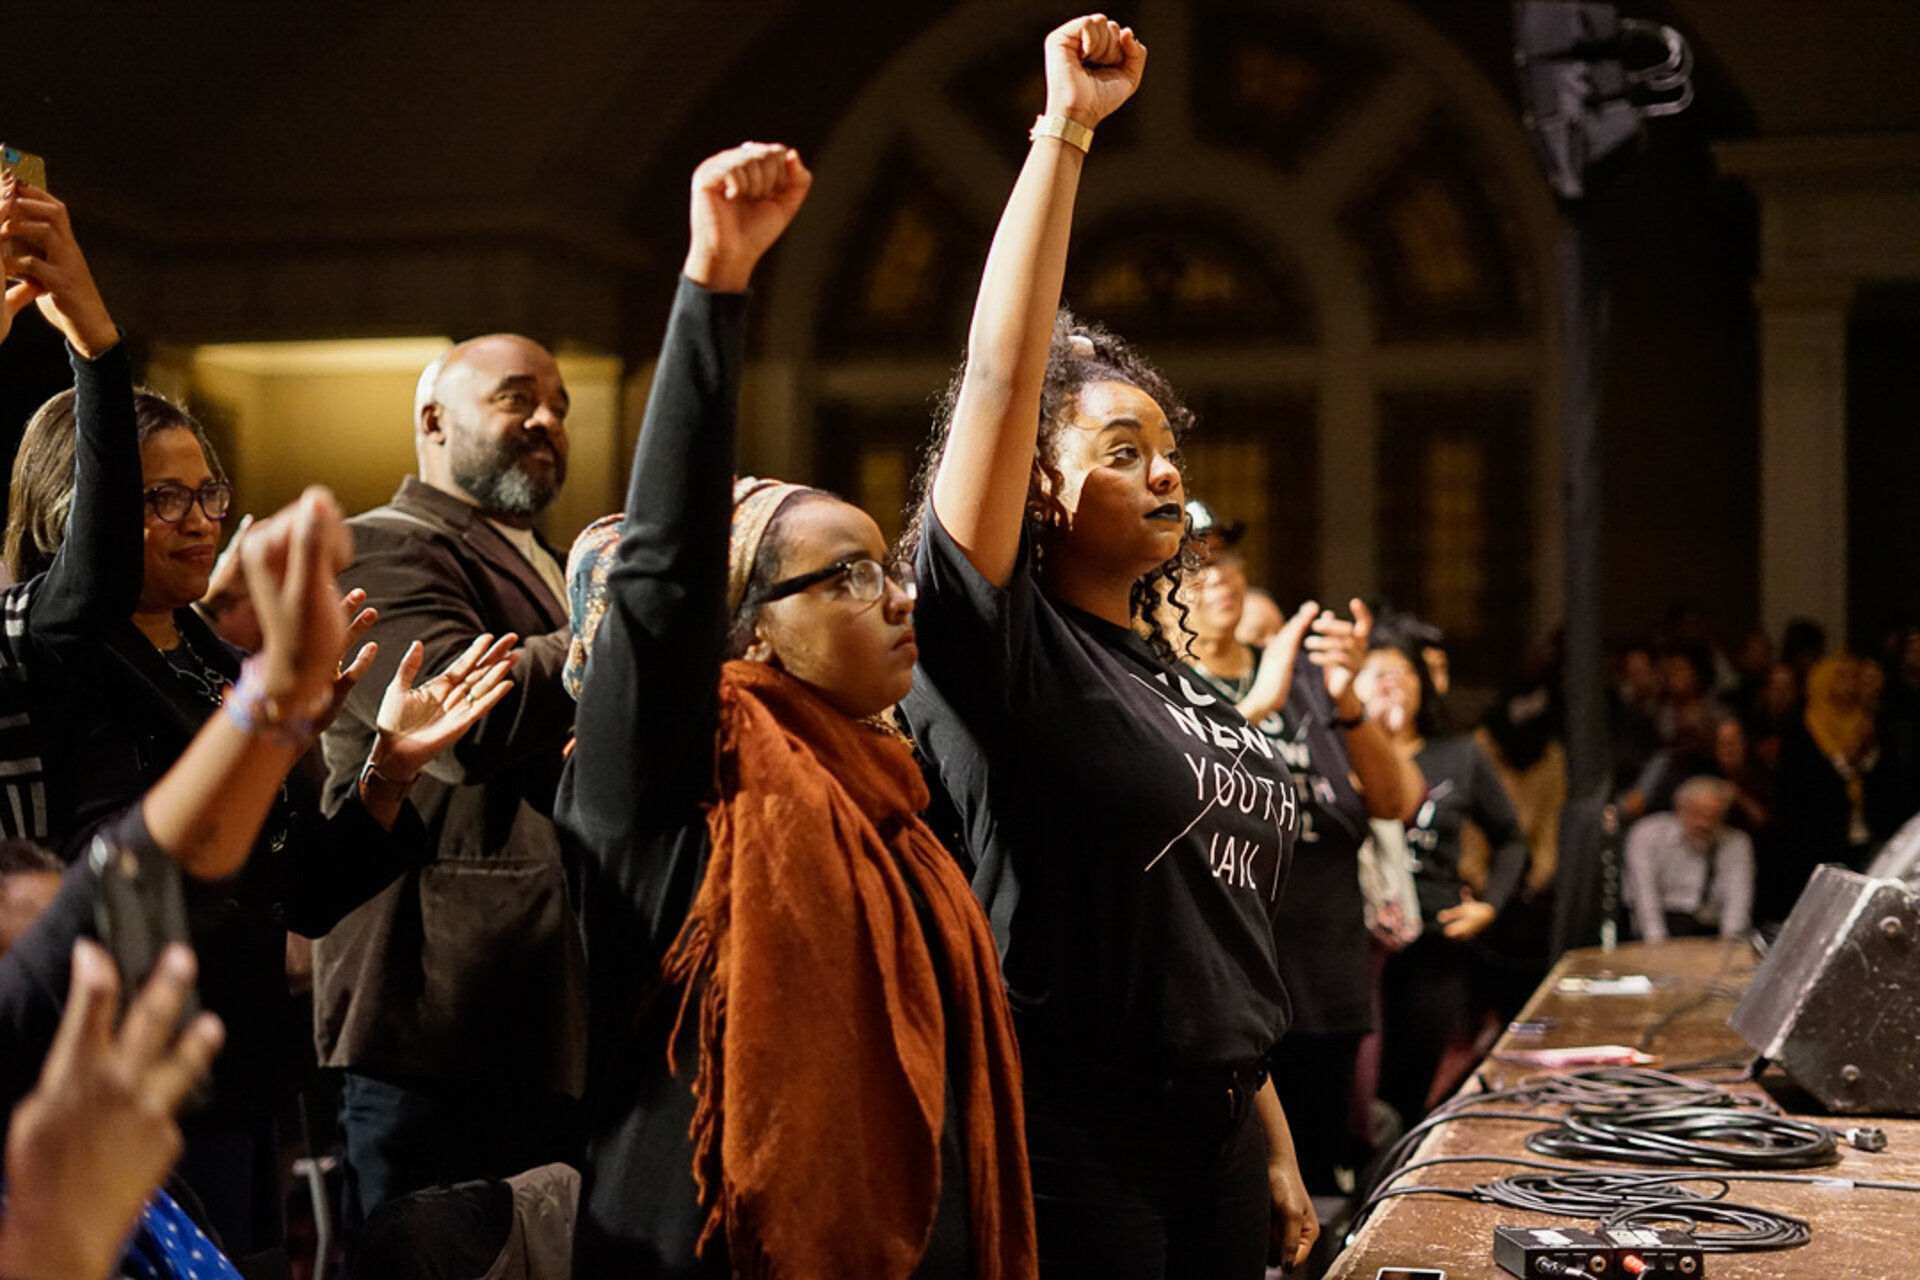 'No Youth Jail' activists raise their fist in support of Angela Davis, who's talk in Seattle touched on her opposition to mass incarceration.